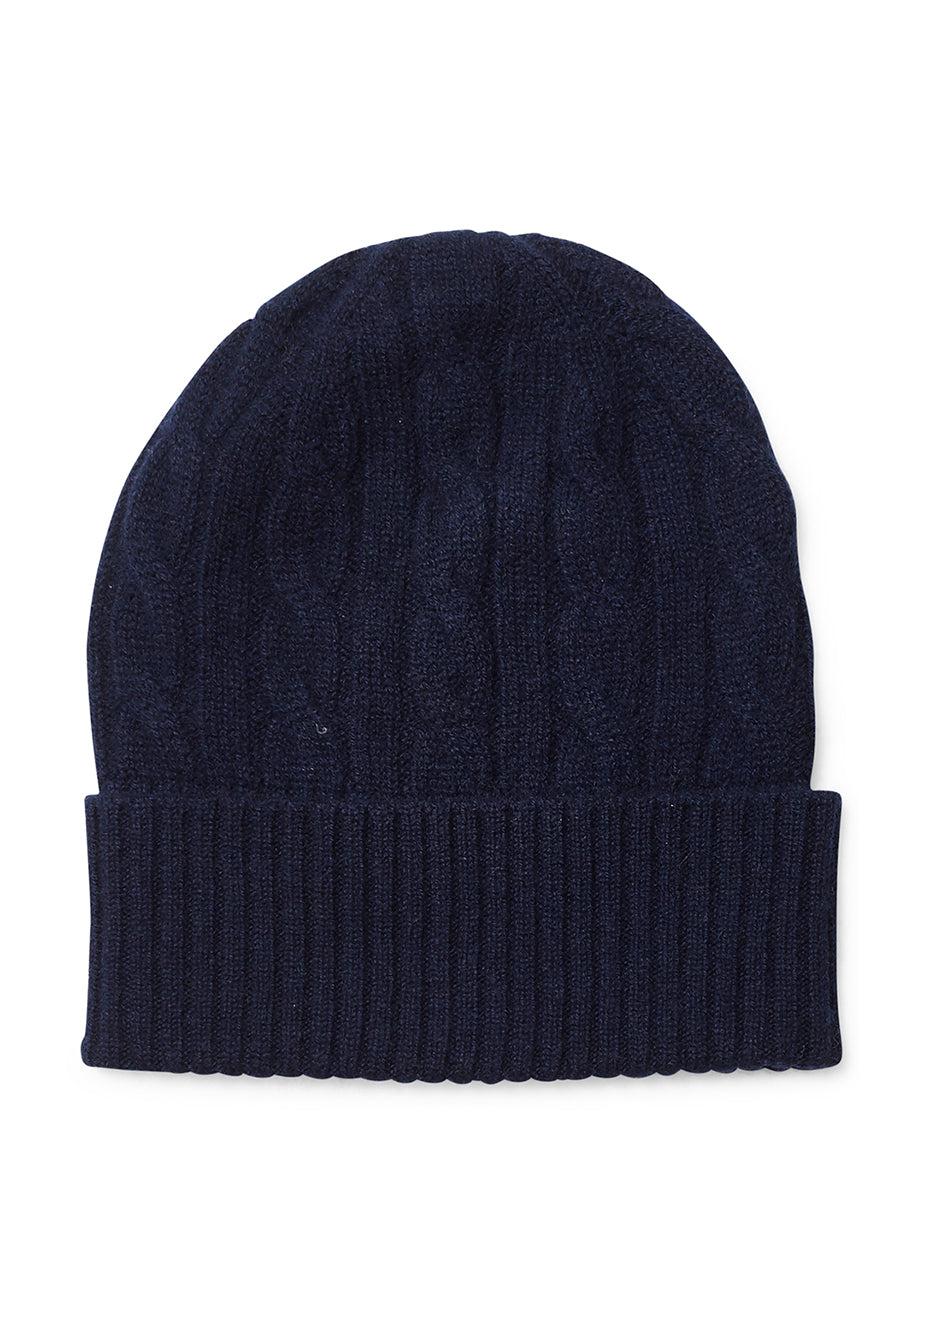 f6e26f4f27b Bad Habits Navy Cashmere Hat